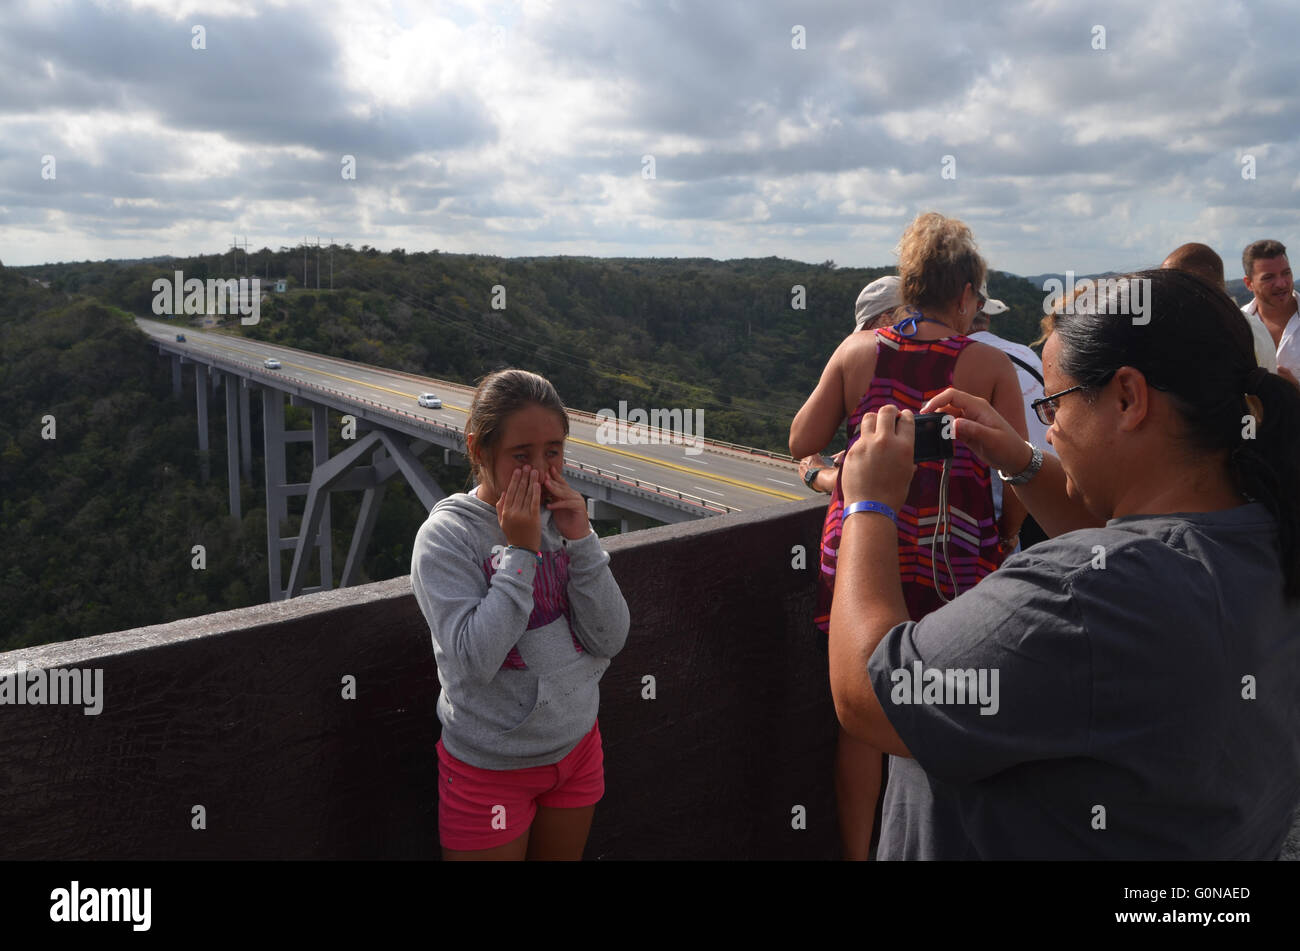 Viaduct of Bacunayagua viewpoint near Matanzas, Cuba 2016 - Stock Image